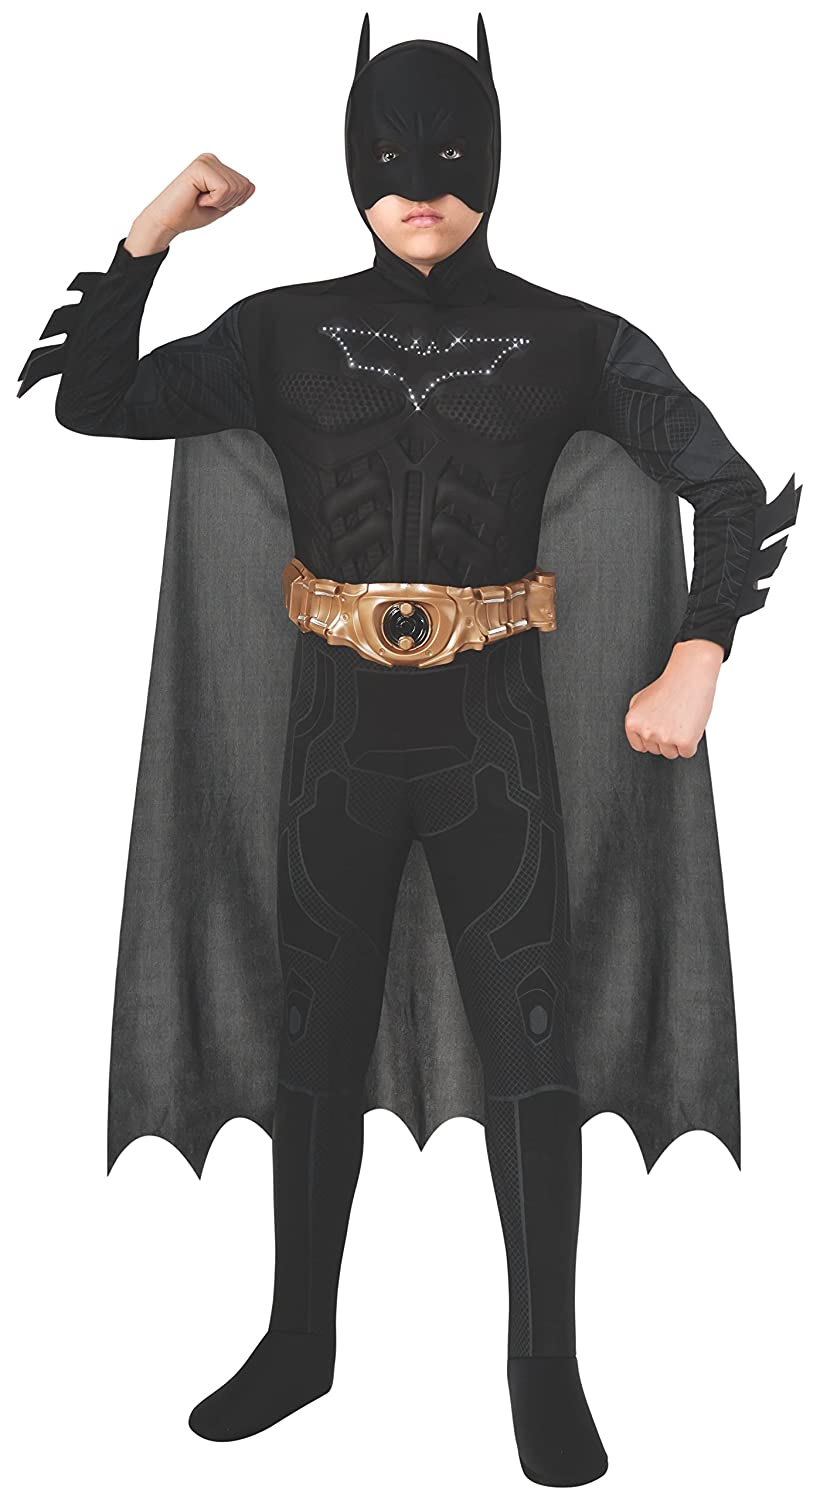 Batman Dark Knight Rises Child's Deluxe Light-Up Batman Costume w/Mask and Cape